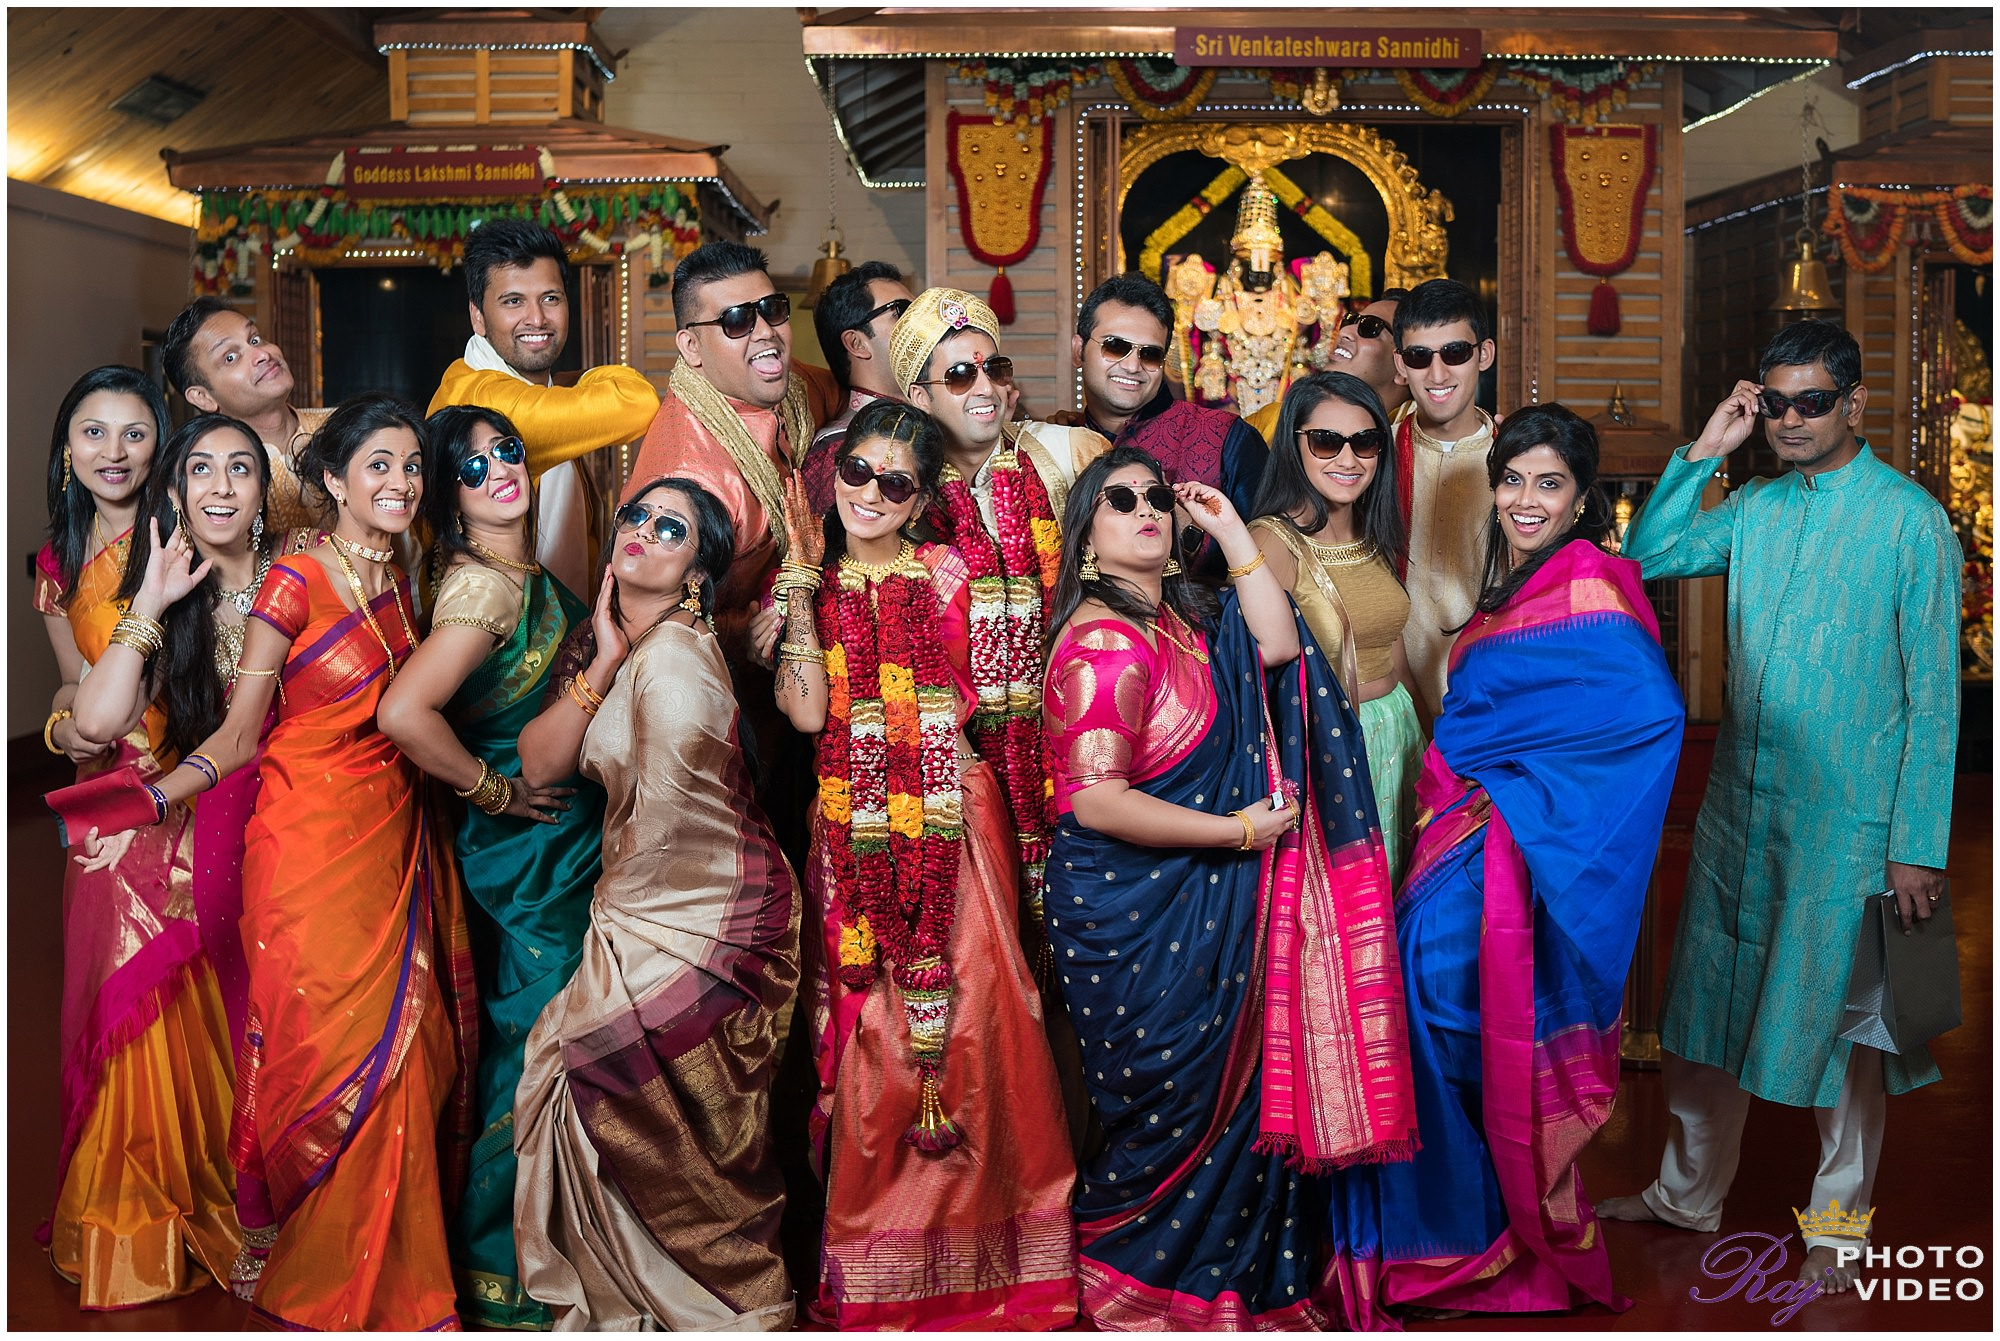 Sri_Venkata_Krishna_Kshetra_Temple_Tempe_Arizona_Indian_Wedding_Sapna_Shyam-3.jpg